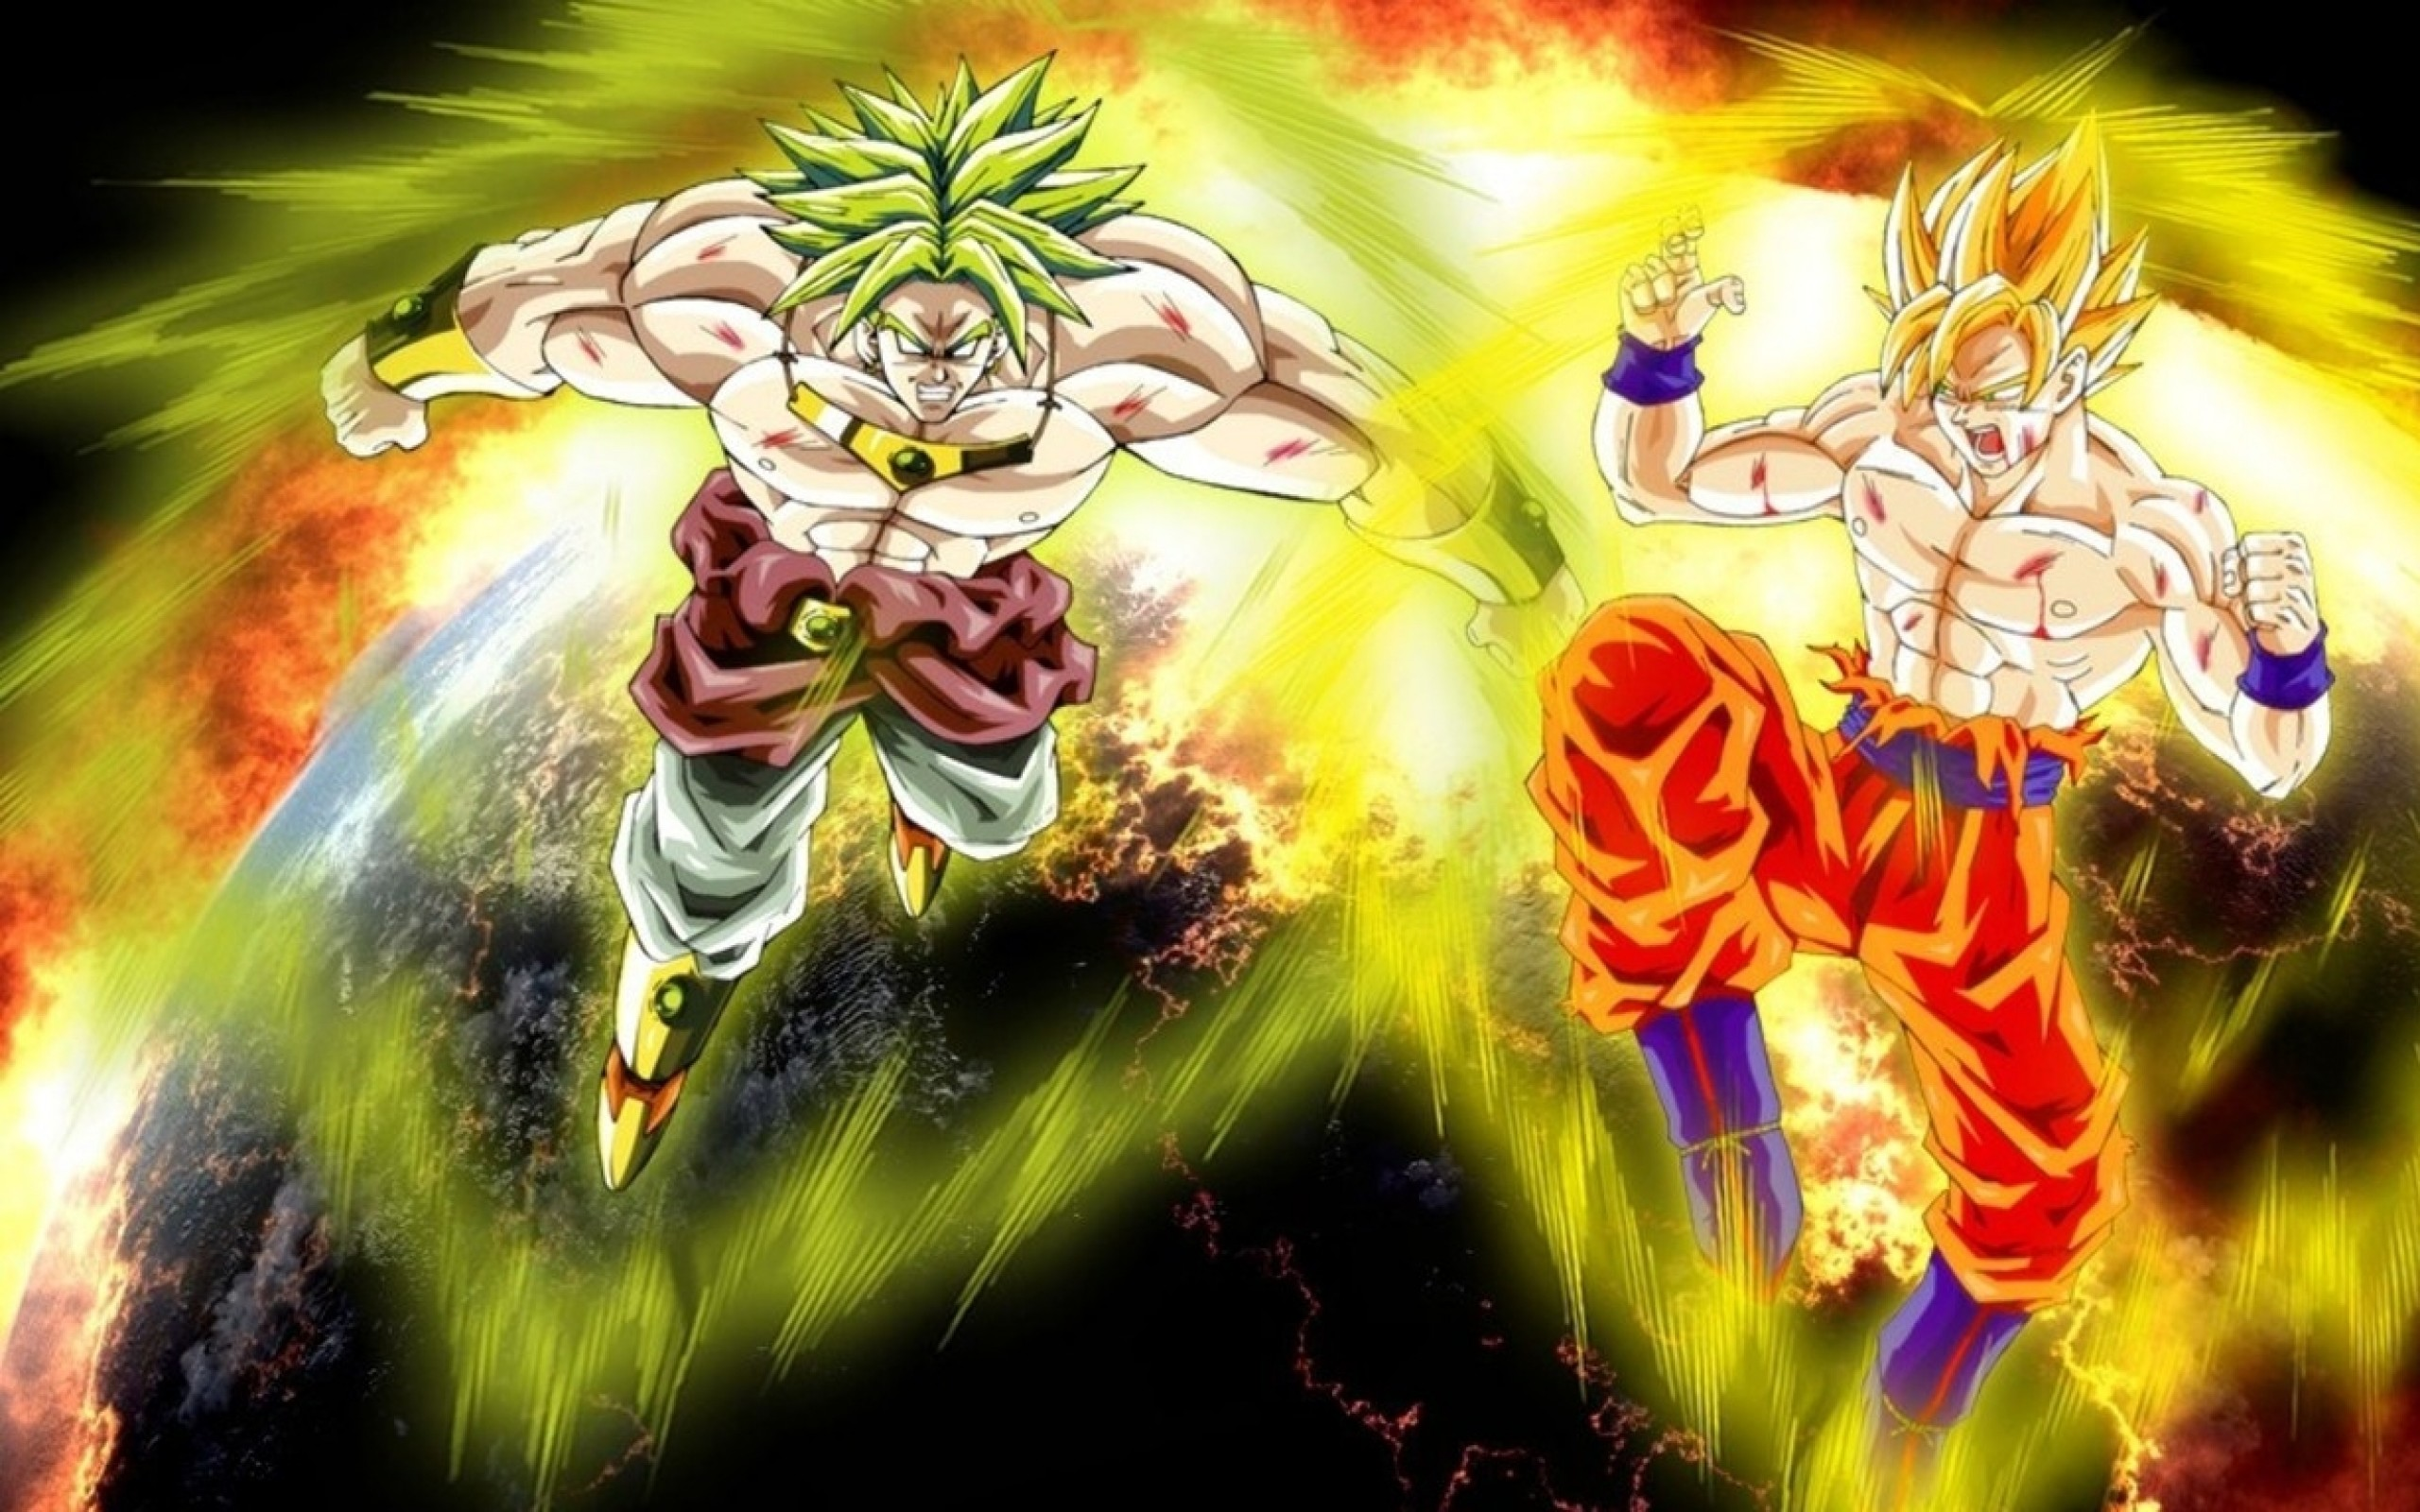 2560x1600 Son Goku Dragon Ball Z Broly Super Saiyan 1280x768 Wallpaper HD Download Widescreen